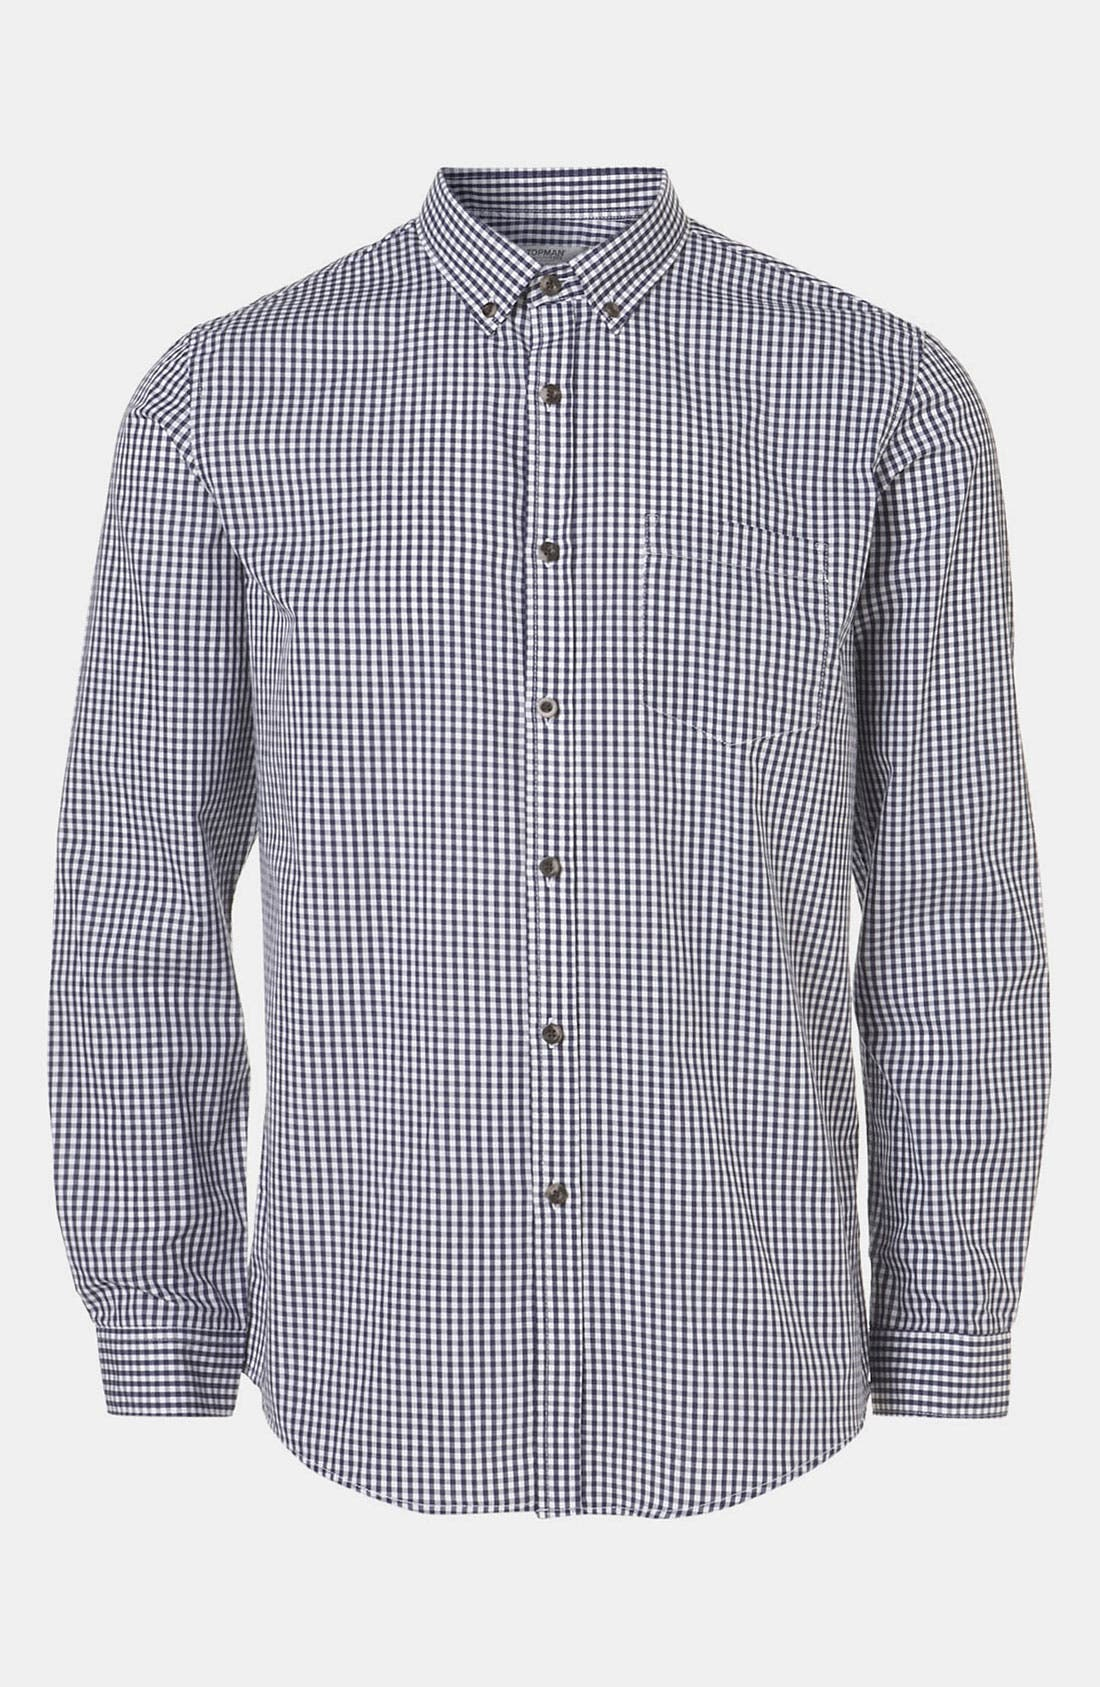 Alternate Image 1 Selected - Topman Extra Trim Gingham Check Shirt